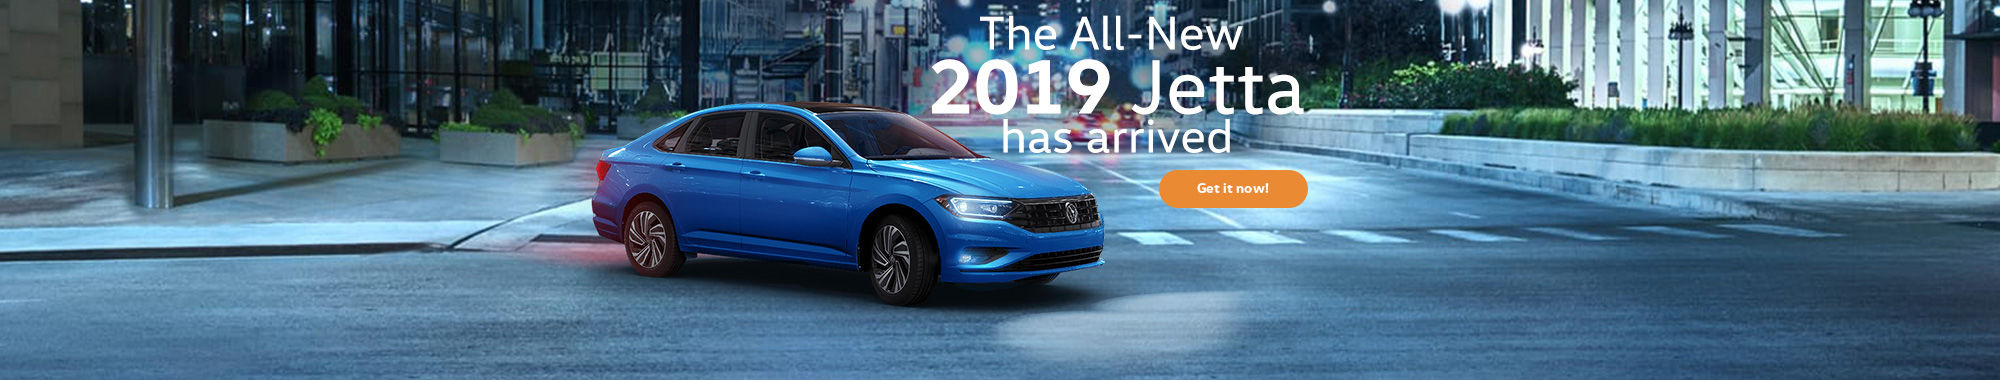 The new 2019 Jetta